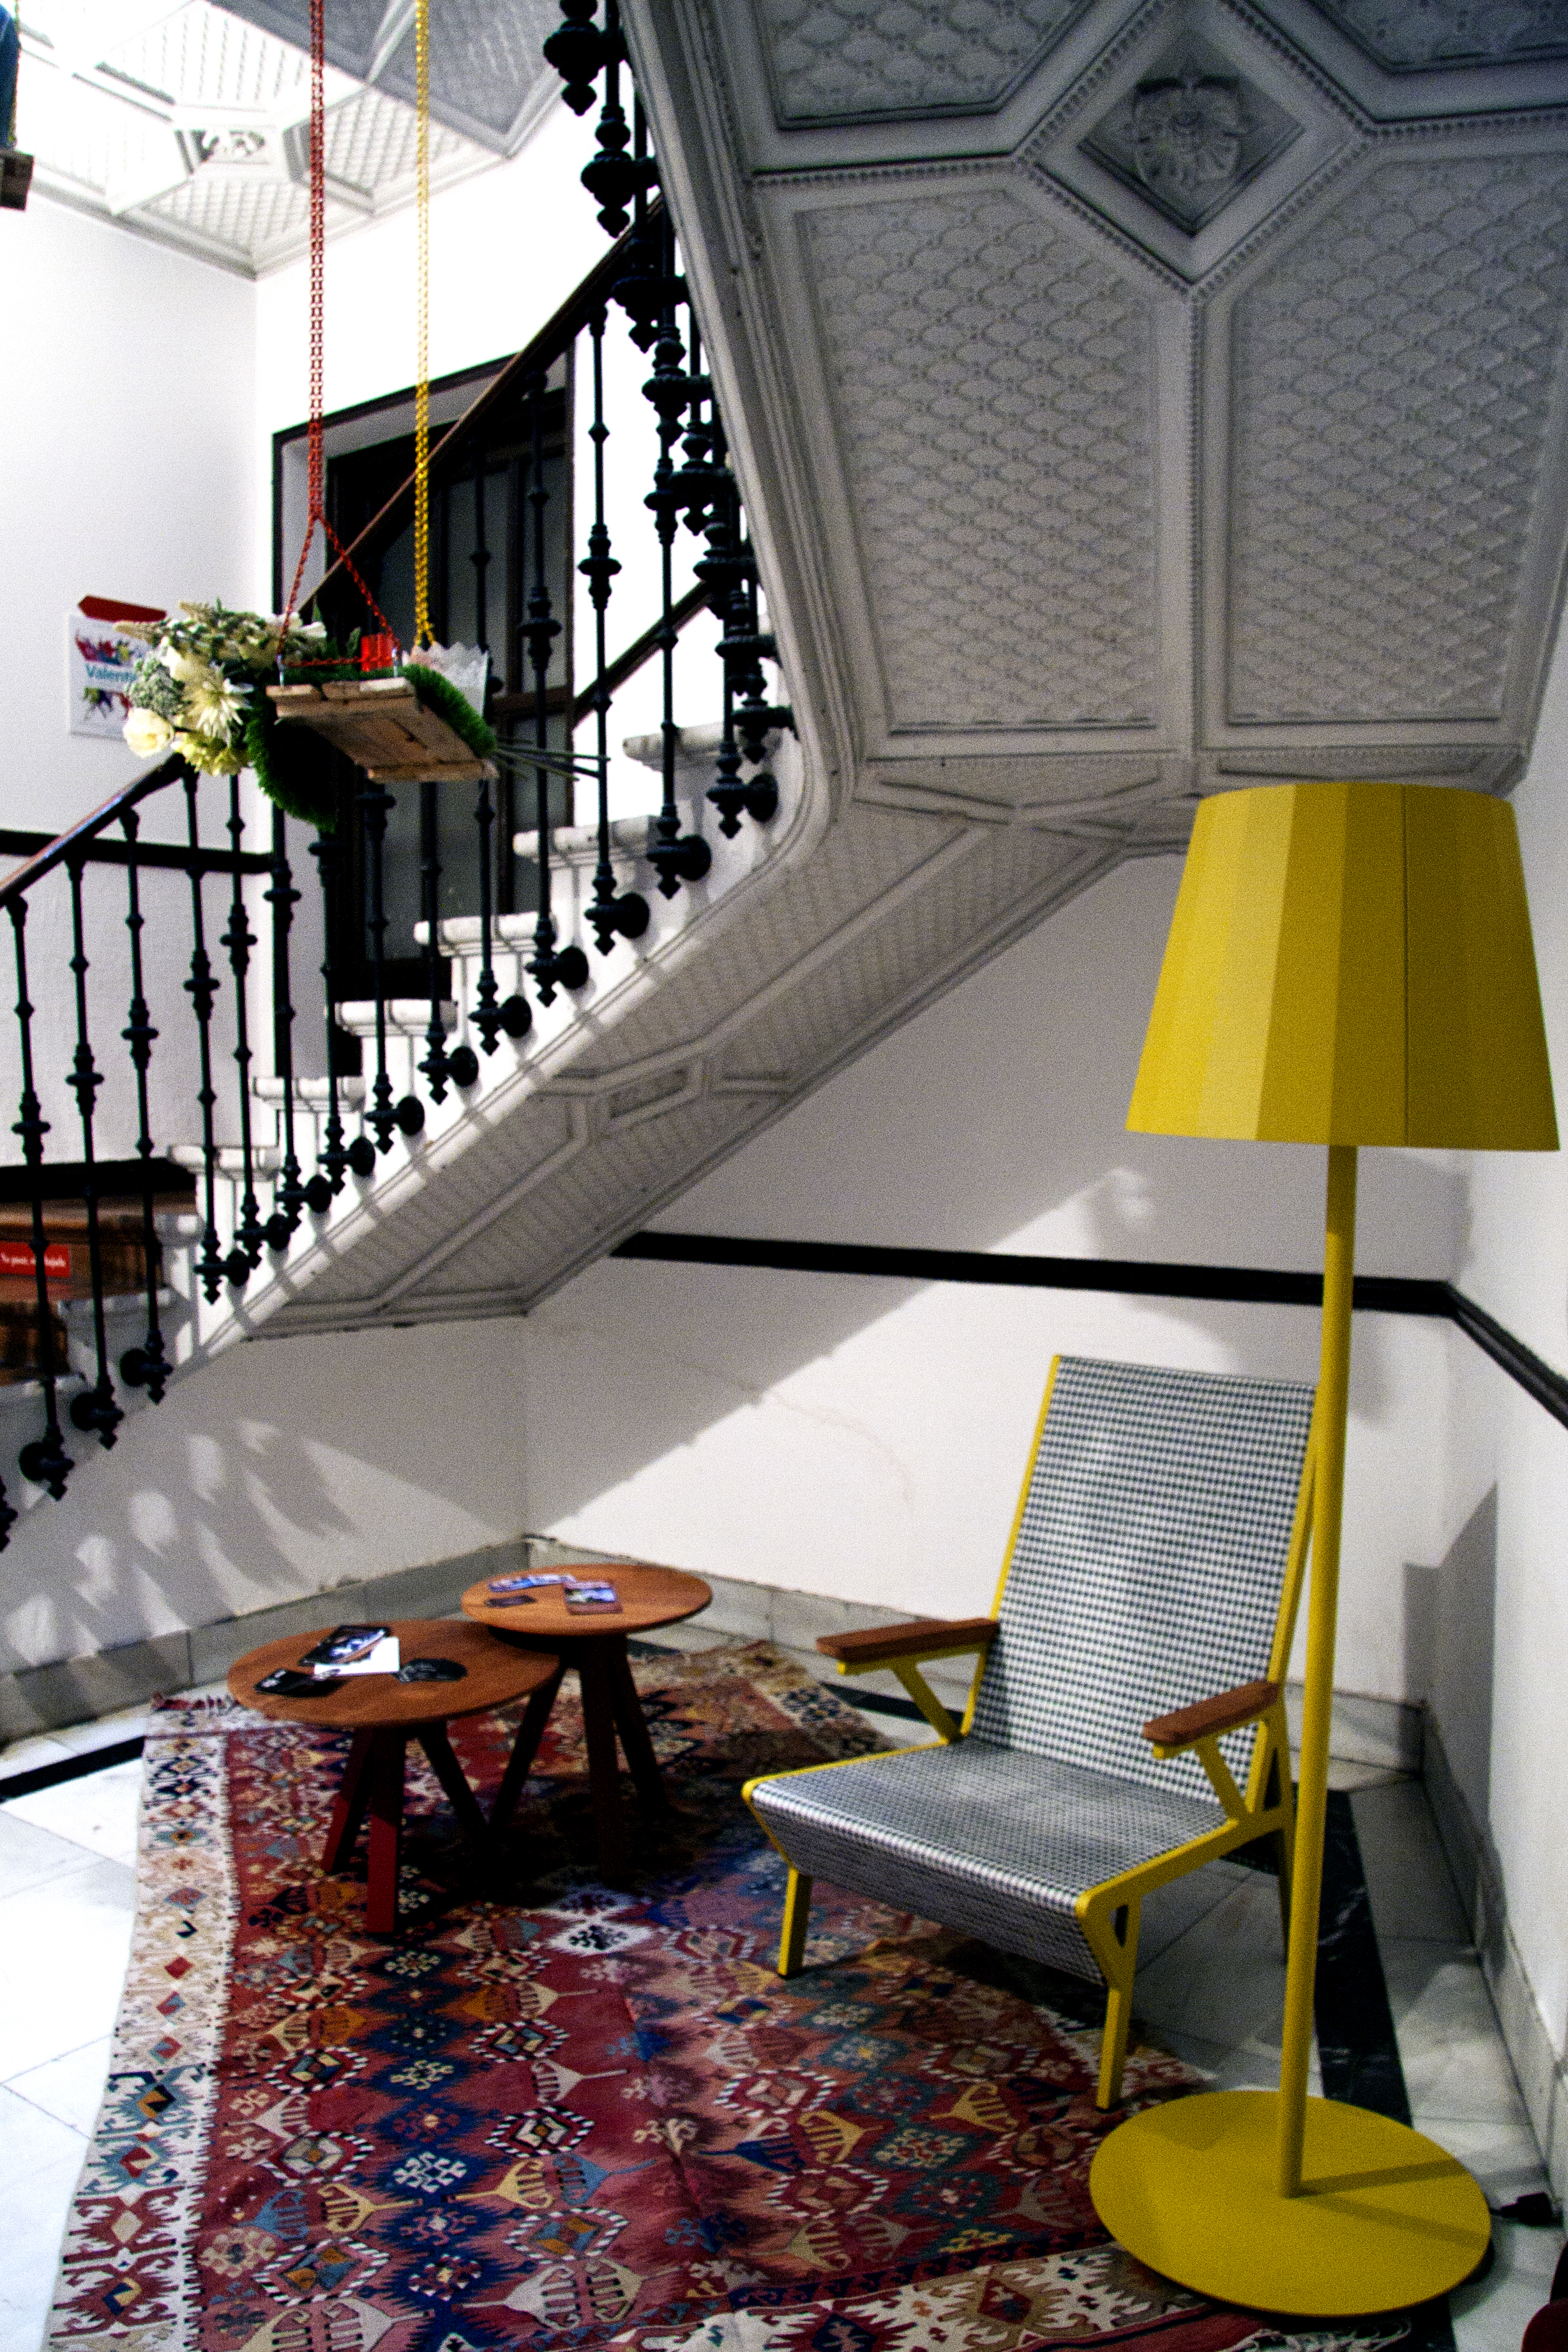 bottom of a staircase with a yellow floor lamp, a chair and a traditional rug